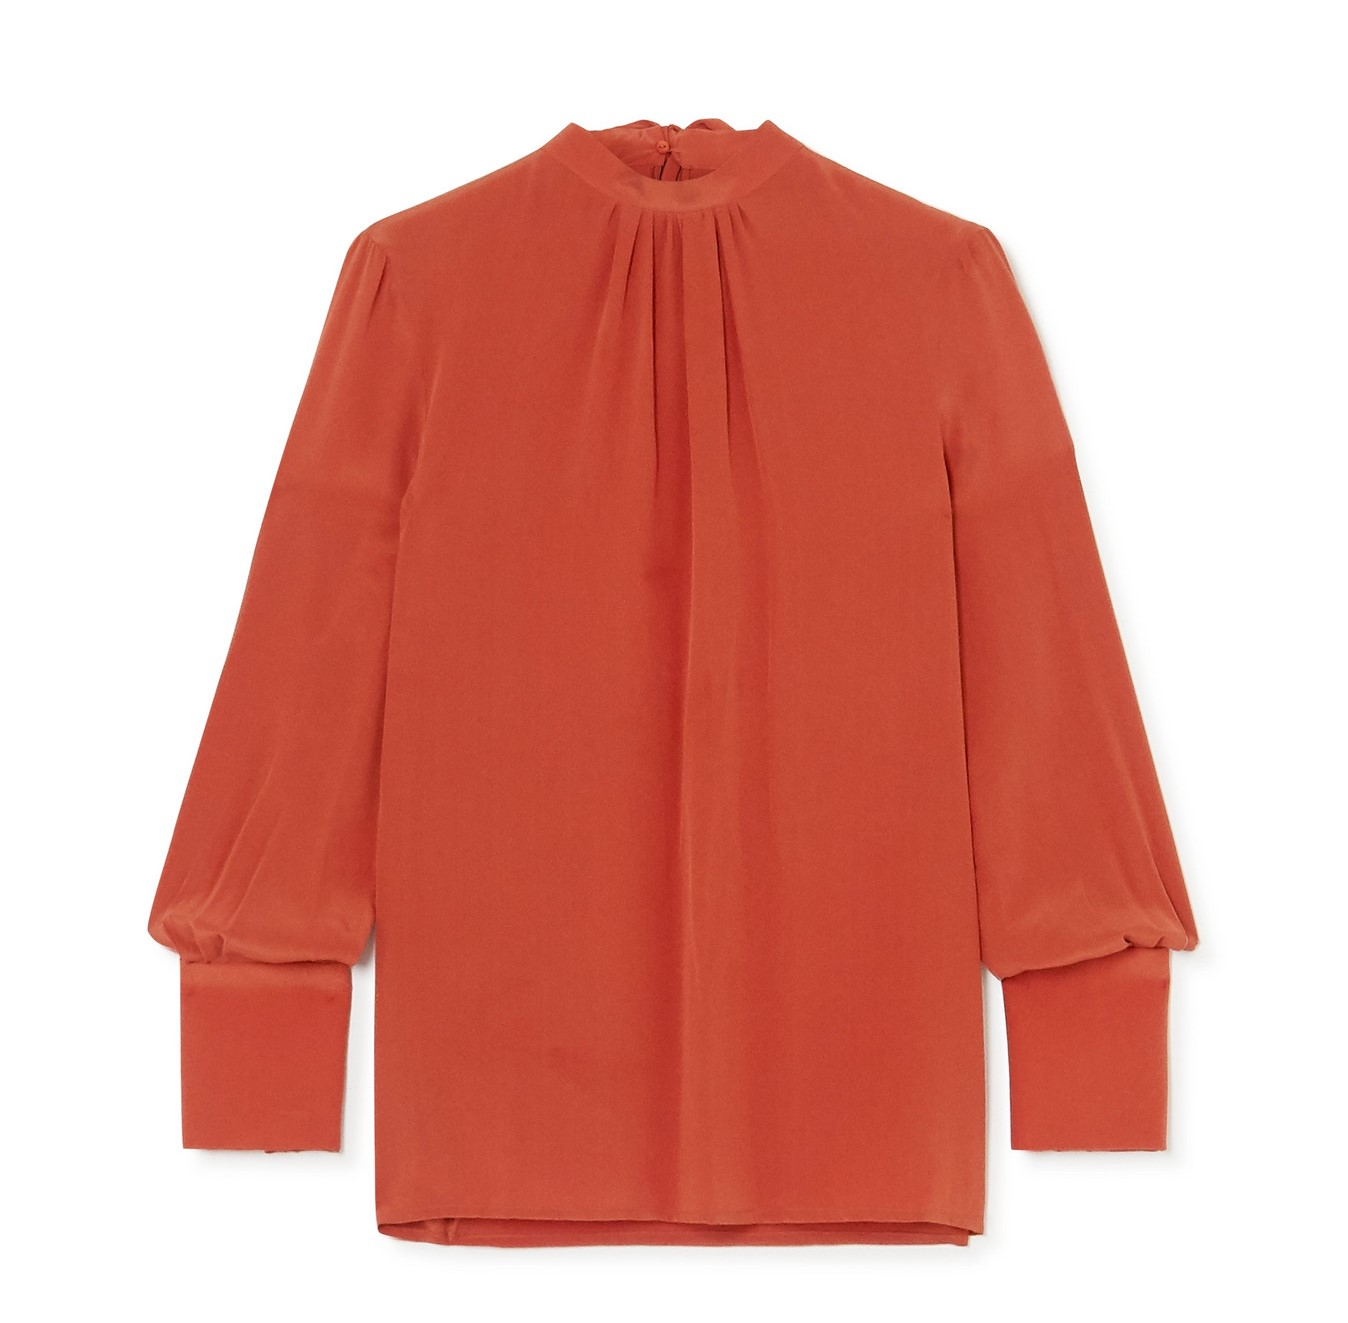 The pussy-bow silk blouse